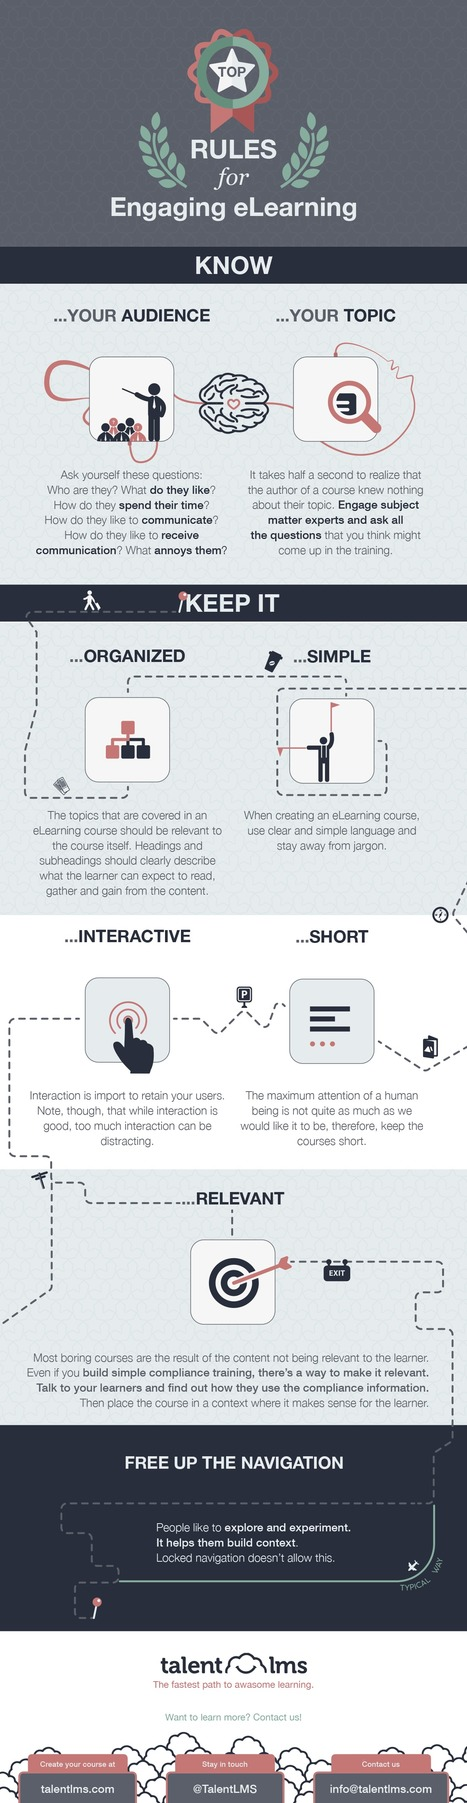 Top Rules of Engaging eLearning Infographic | Disruptive eLearning | Scoop.it